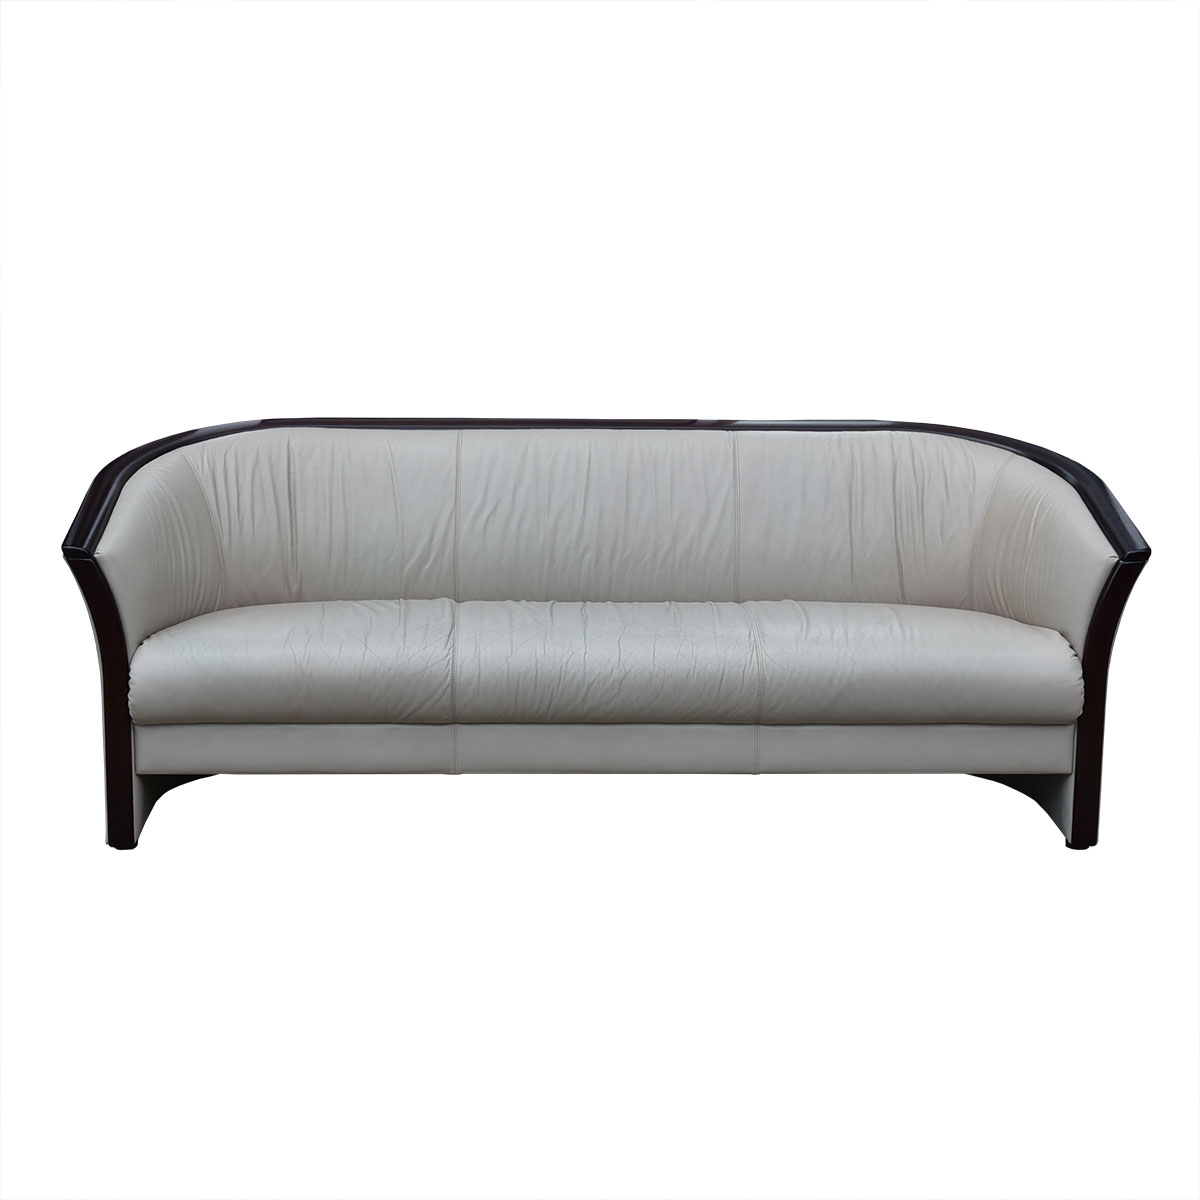 Ekornes Rosewood Accented 3-Seat Vintage Leather Sofa